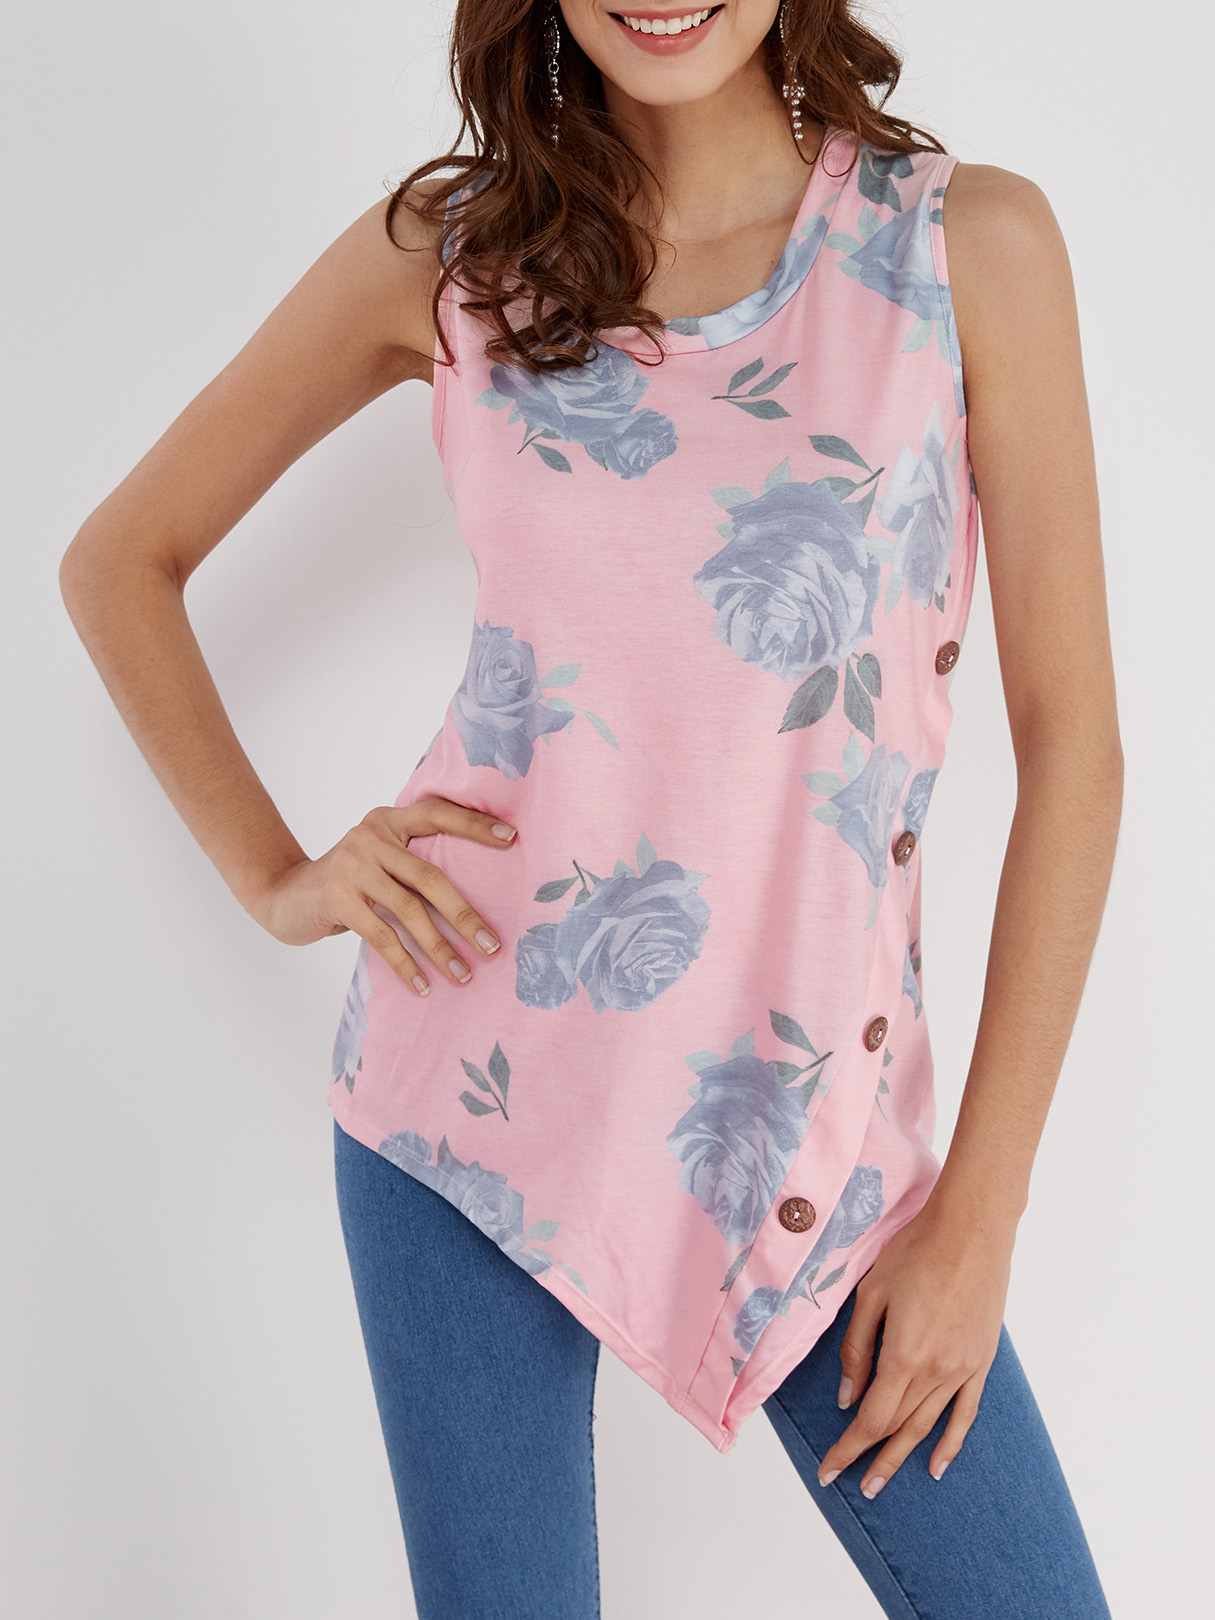 Pink Floral Print Round Neck Button-down Asymmetrical Top gathered neck floral sleeveless top